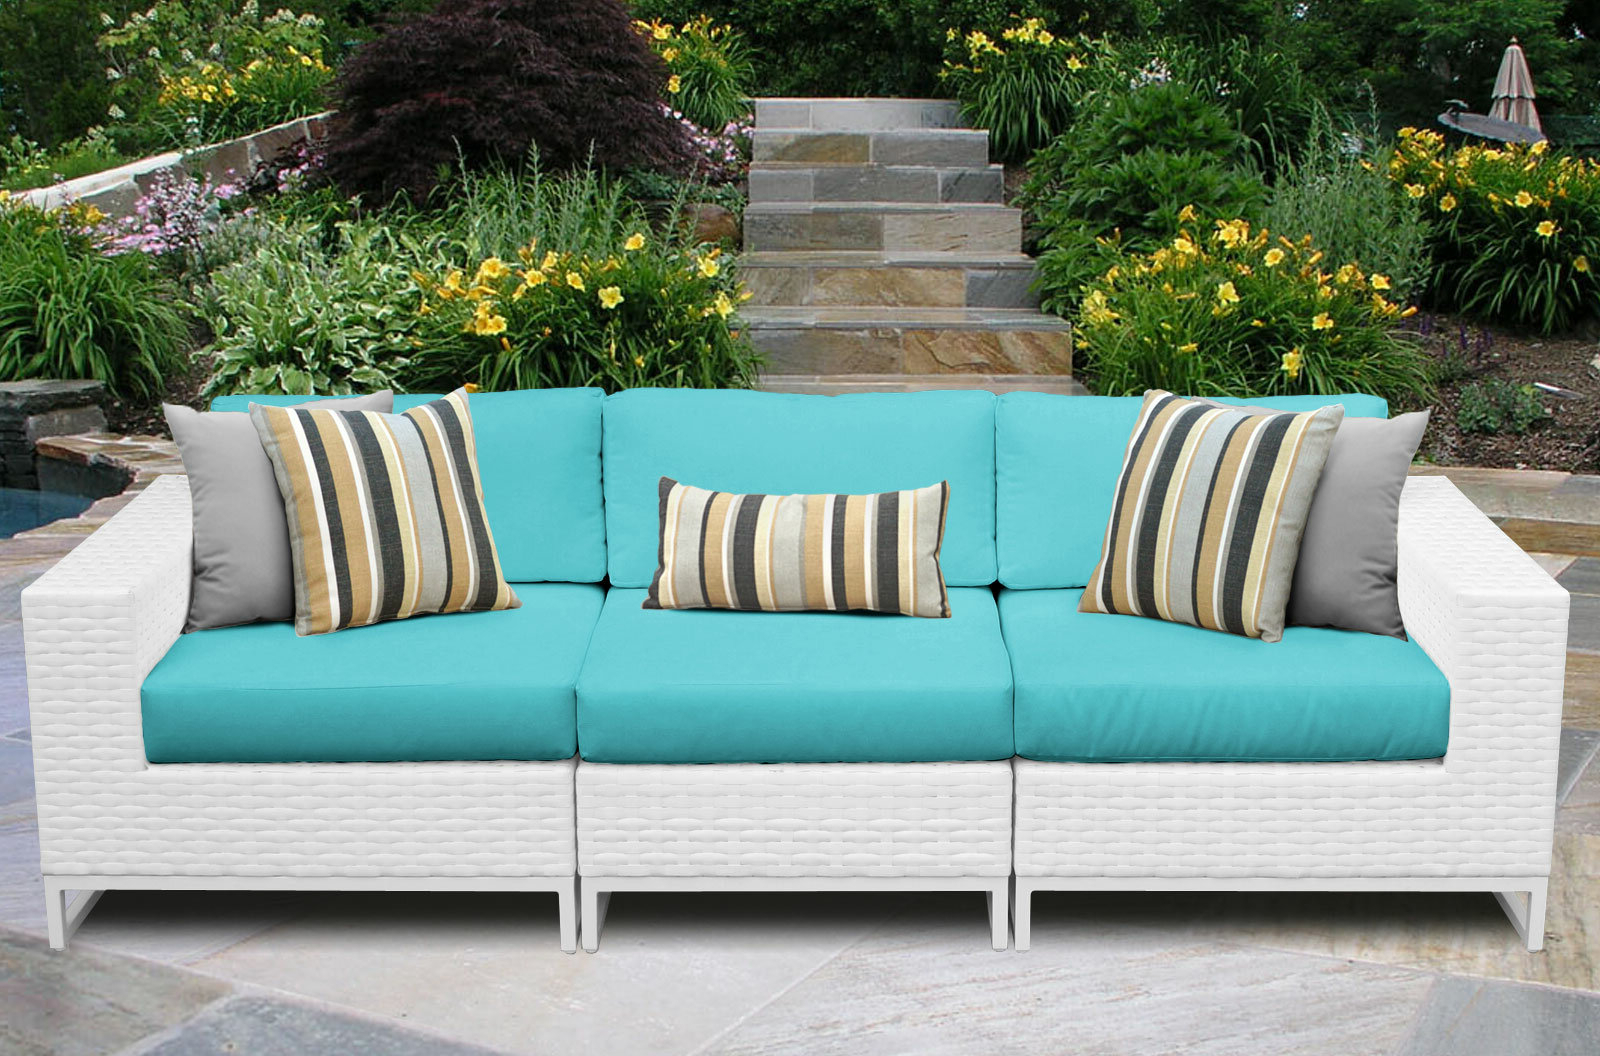 Honeycutt Patio Sofas With Cushions Pertaining To Popular Menifee Patio Sofa With Cushions (View 5 of 25)